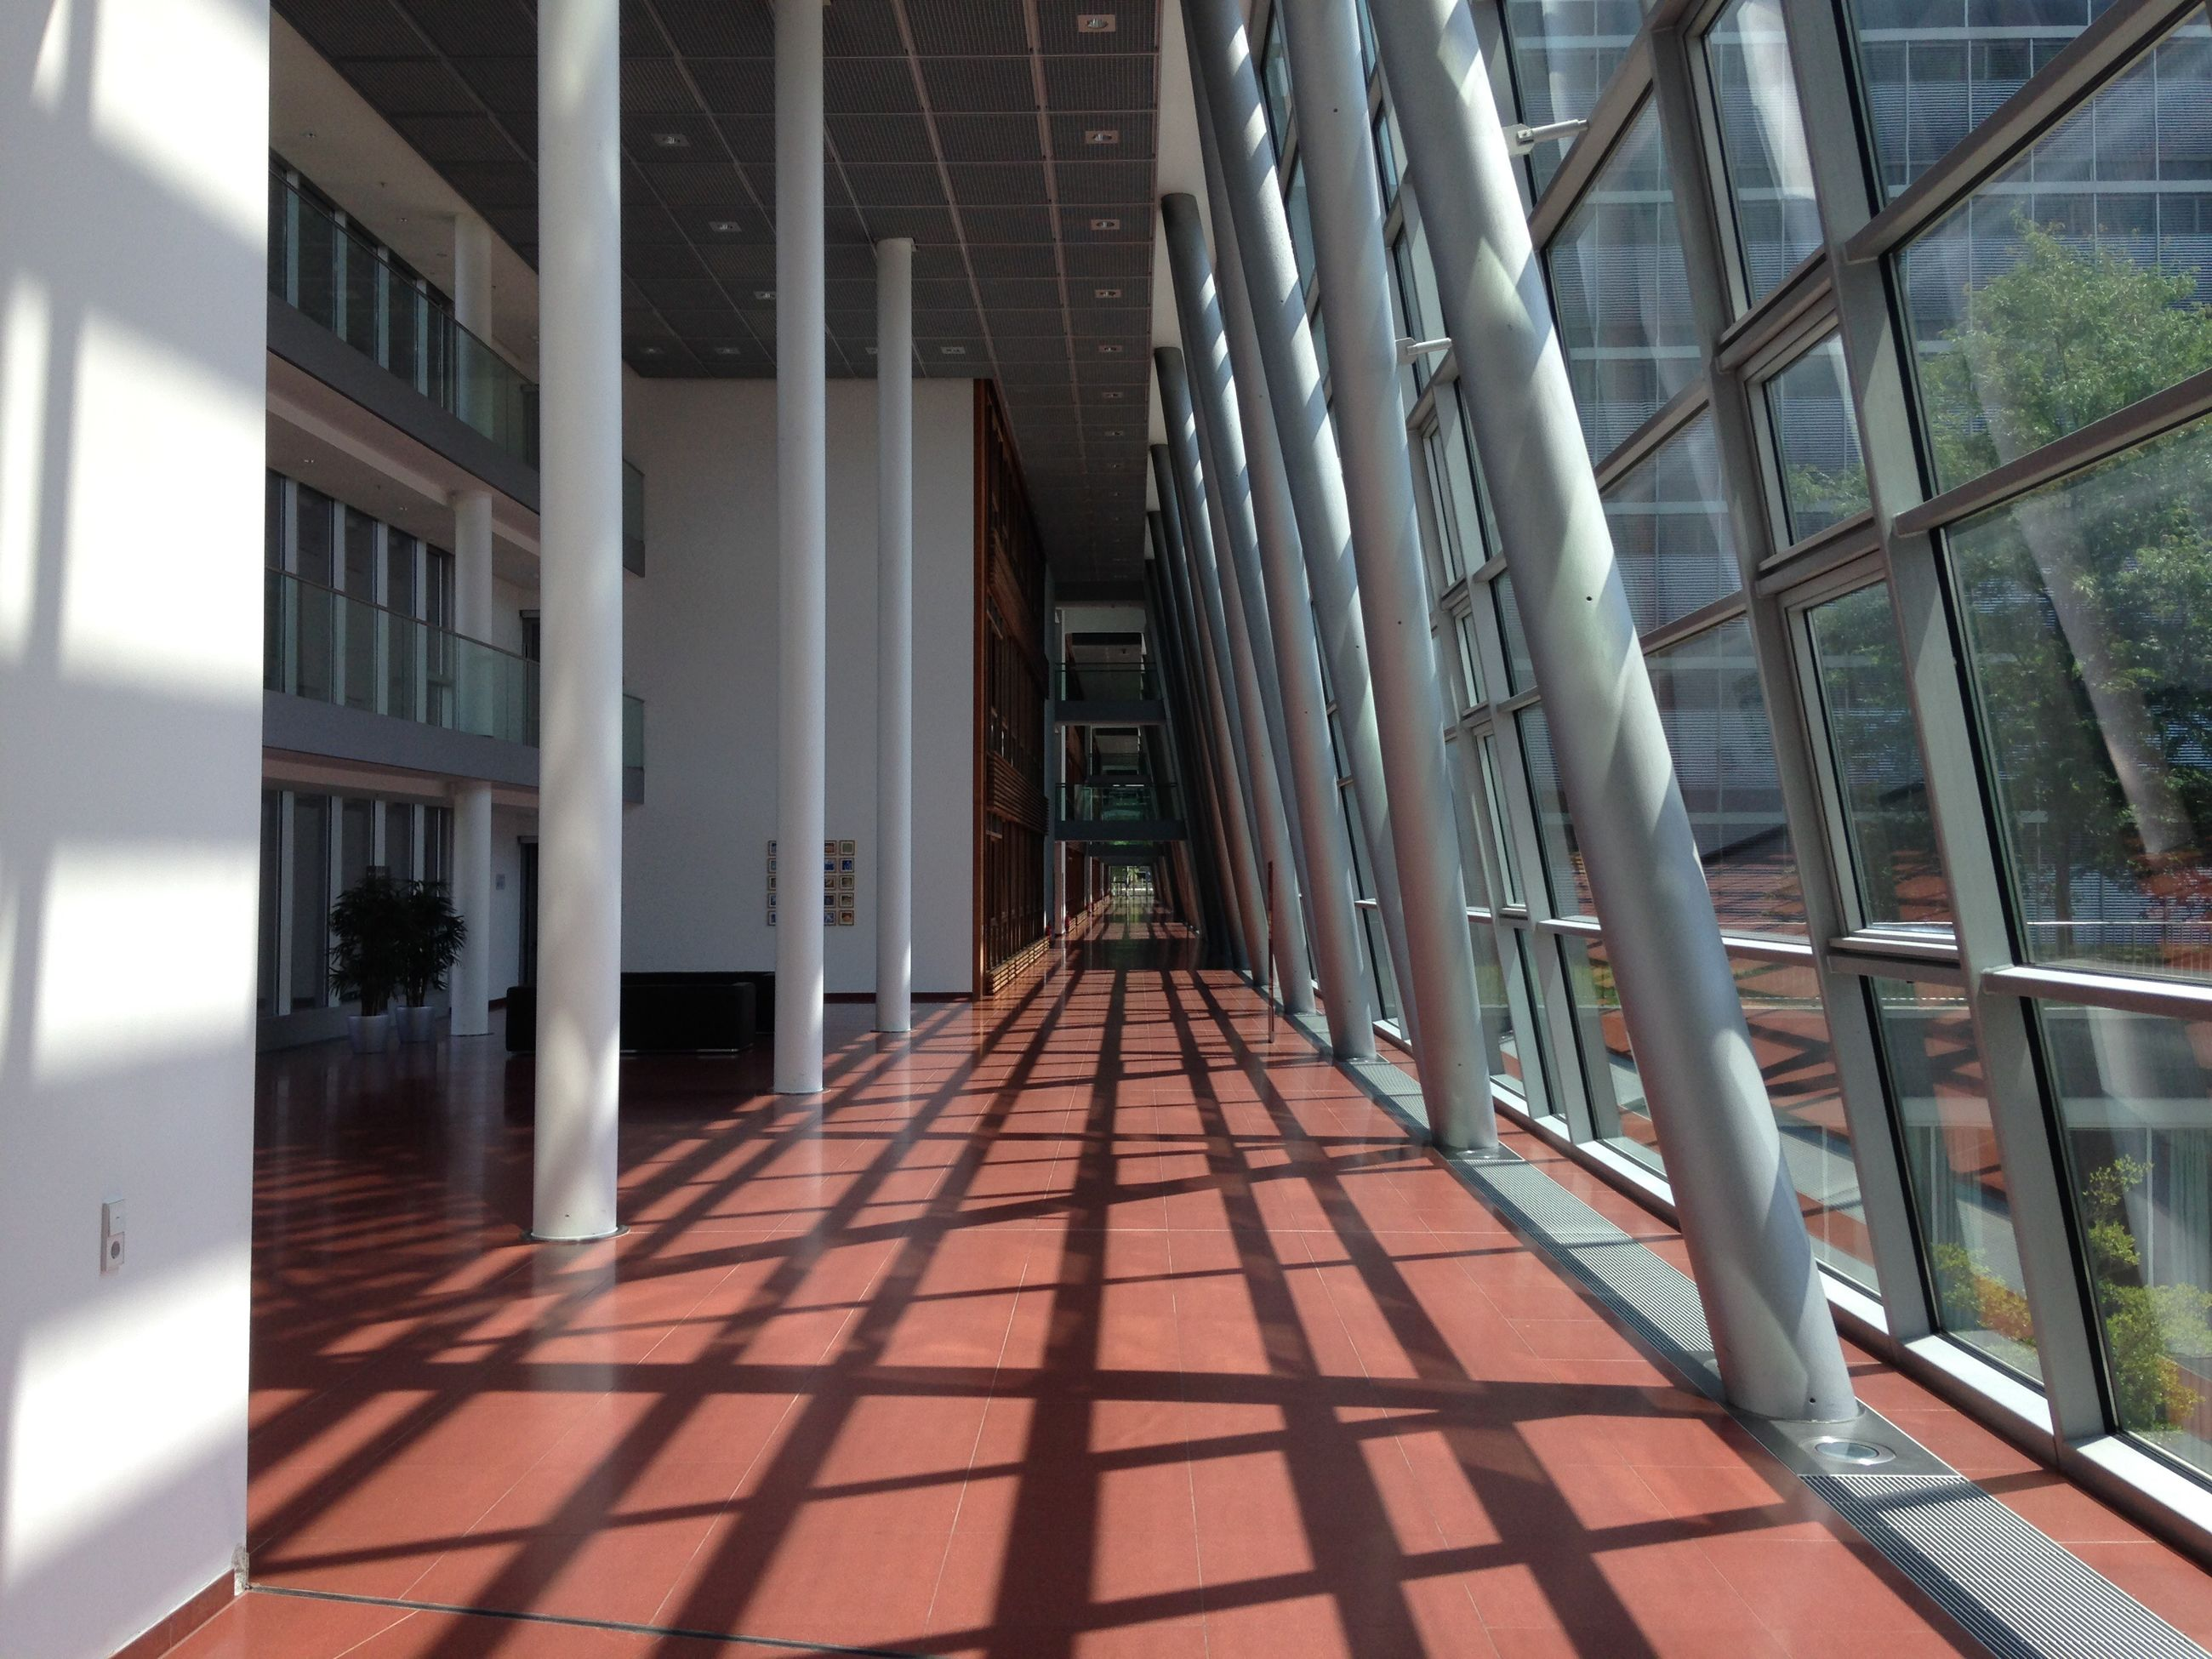 architecture, built structure, building, building exterior, the way forward, day, sunlight, window, direction, no people, corridor, arcade, flooring, diminishing perspective, outdoors, empty, glass - material, shadow, nature, modern, architectural column, tiled floor, surface level